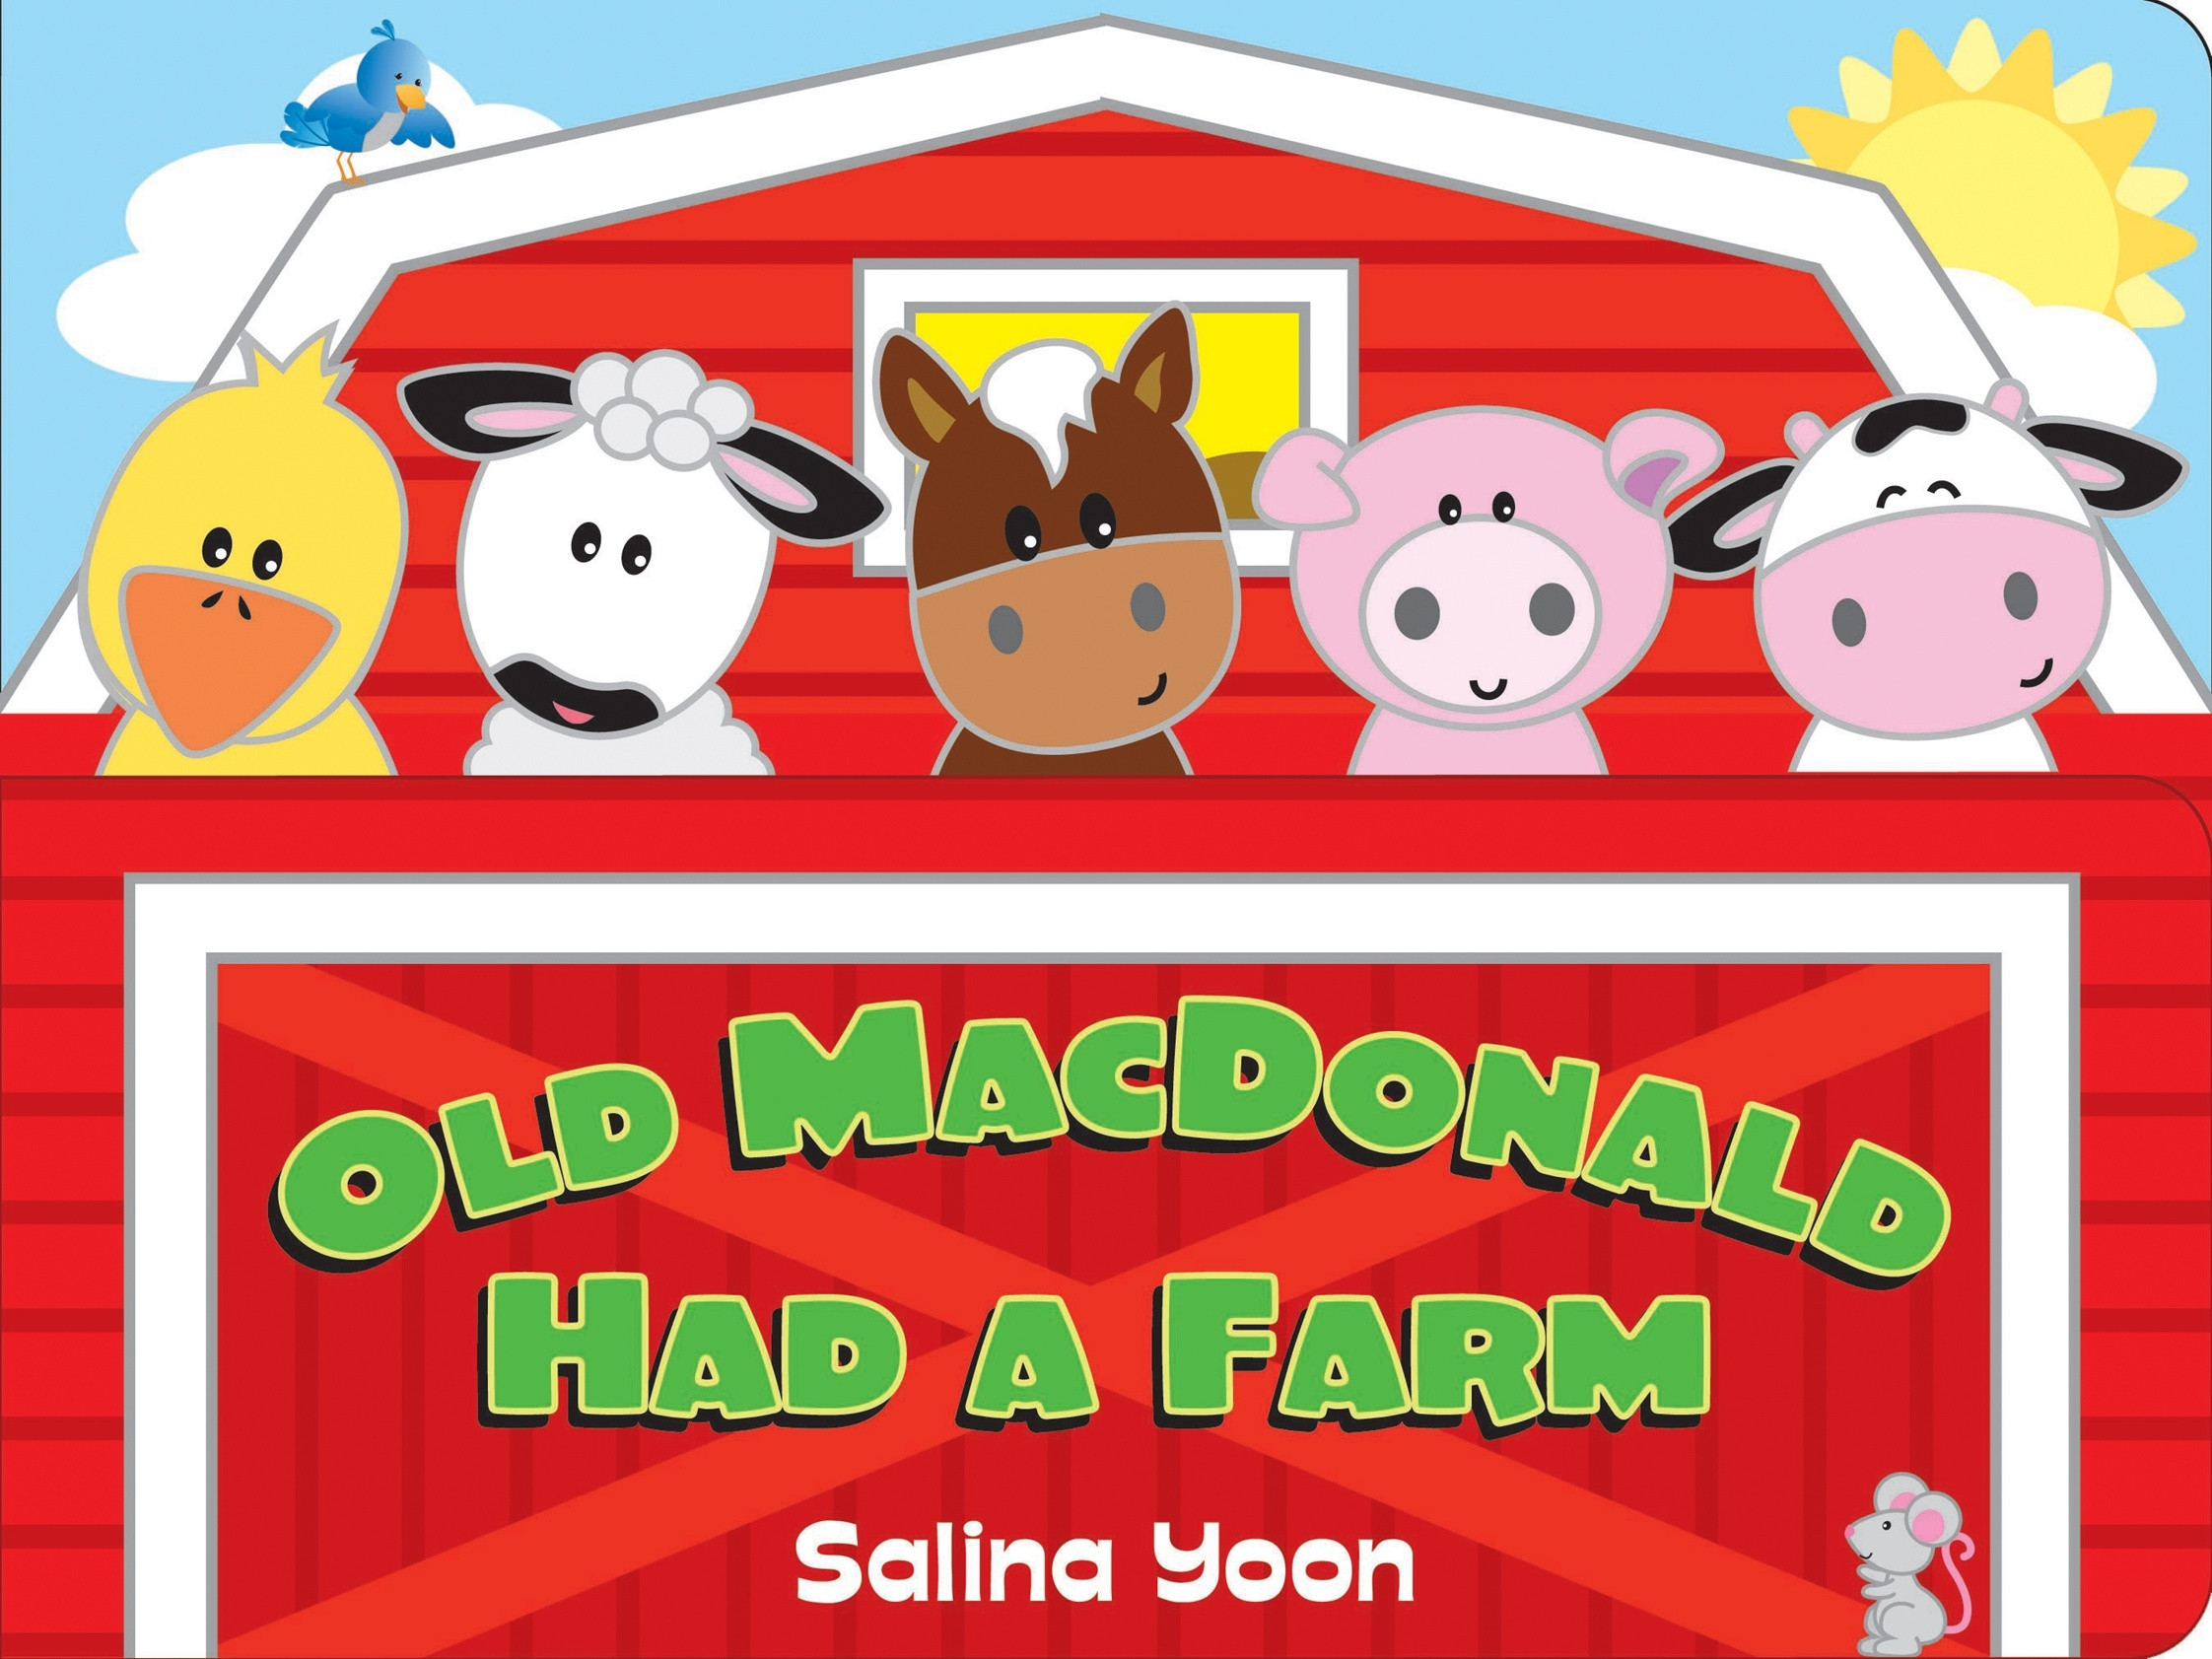 7 Farm Animals Preschool Clipart